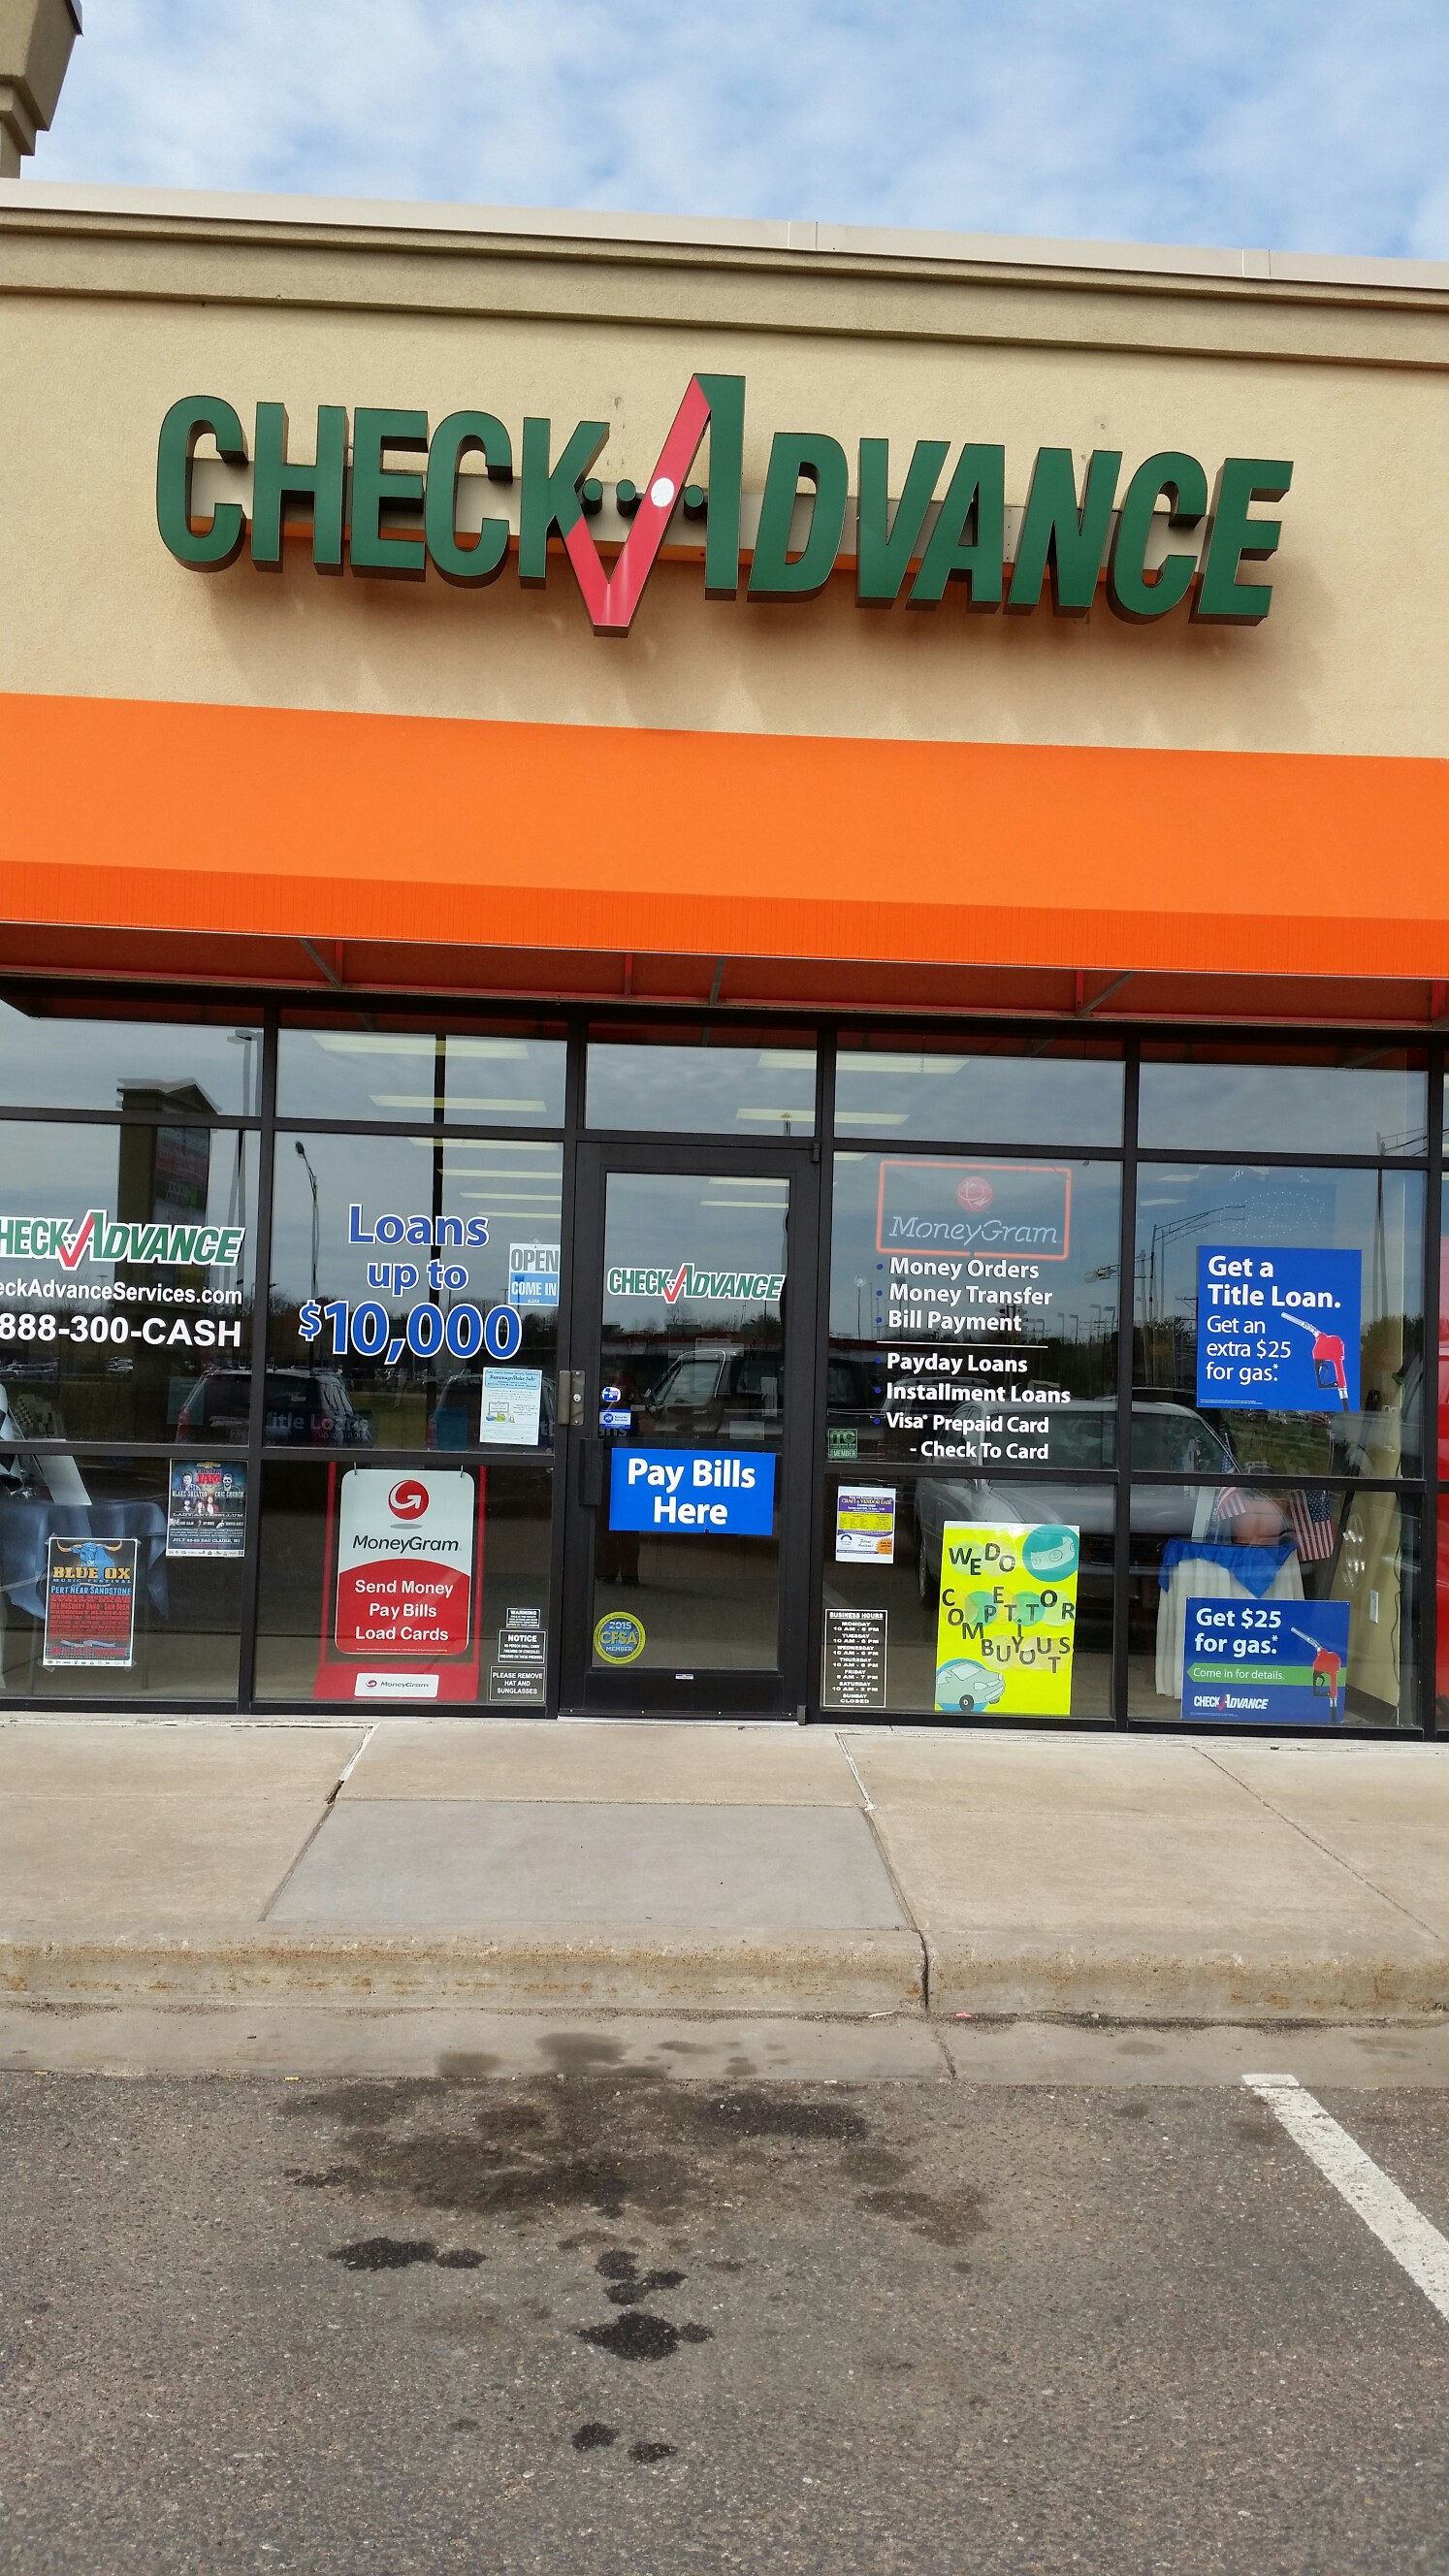 Cash advance in vacaville ca image 3